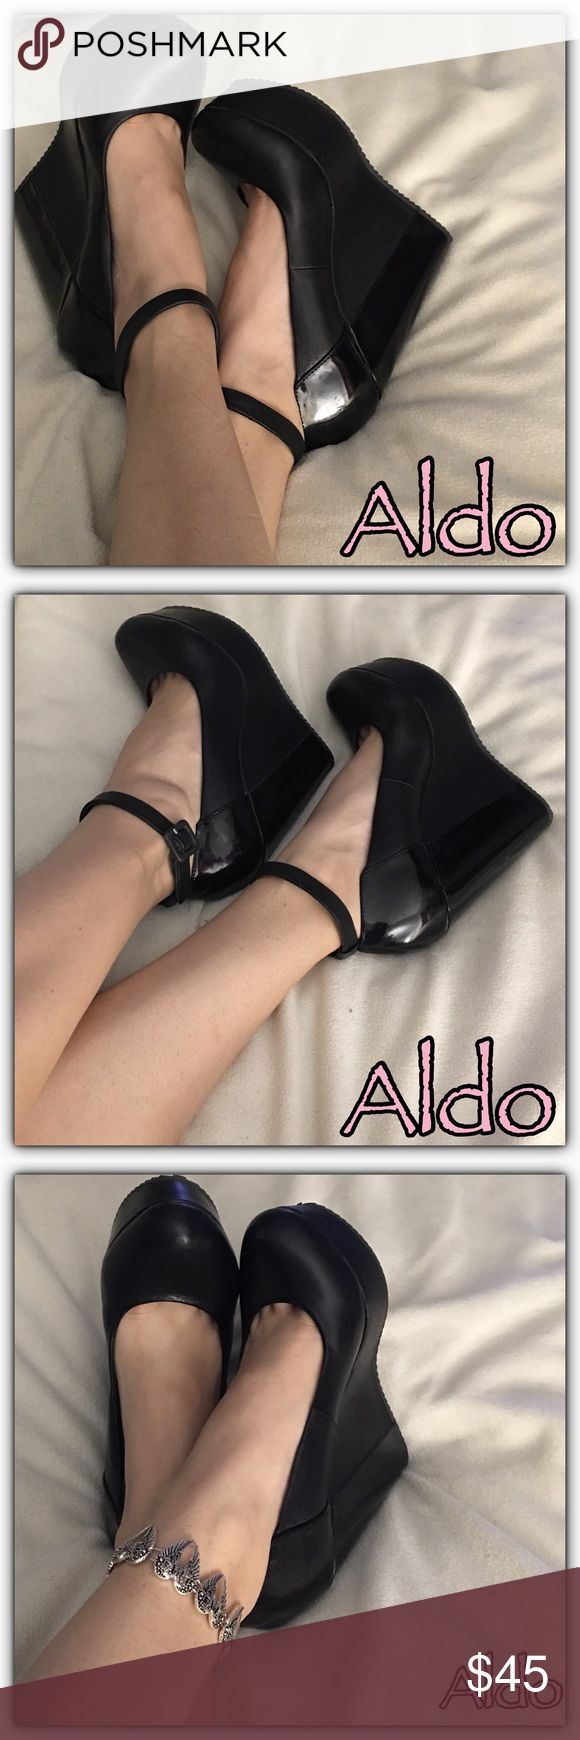 {Aldo} Black Wedge Shoes Super cute black wedges from Aldo's. The back heel part is black patent leather and the rest is the regular soft genuine leather. These gorgeous shoes can either be worn with the ankle strap and buckle as MaryJanes wedges or without ankle strap as just plain slip on wedges. EUC. ALDO Shoes Wedges